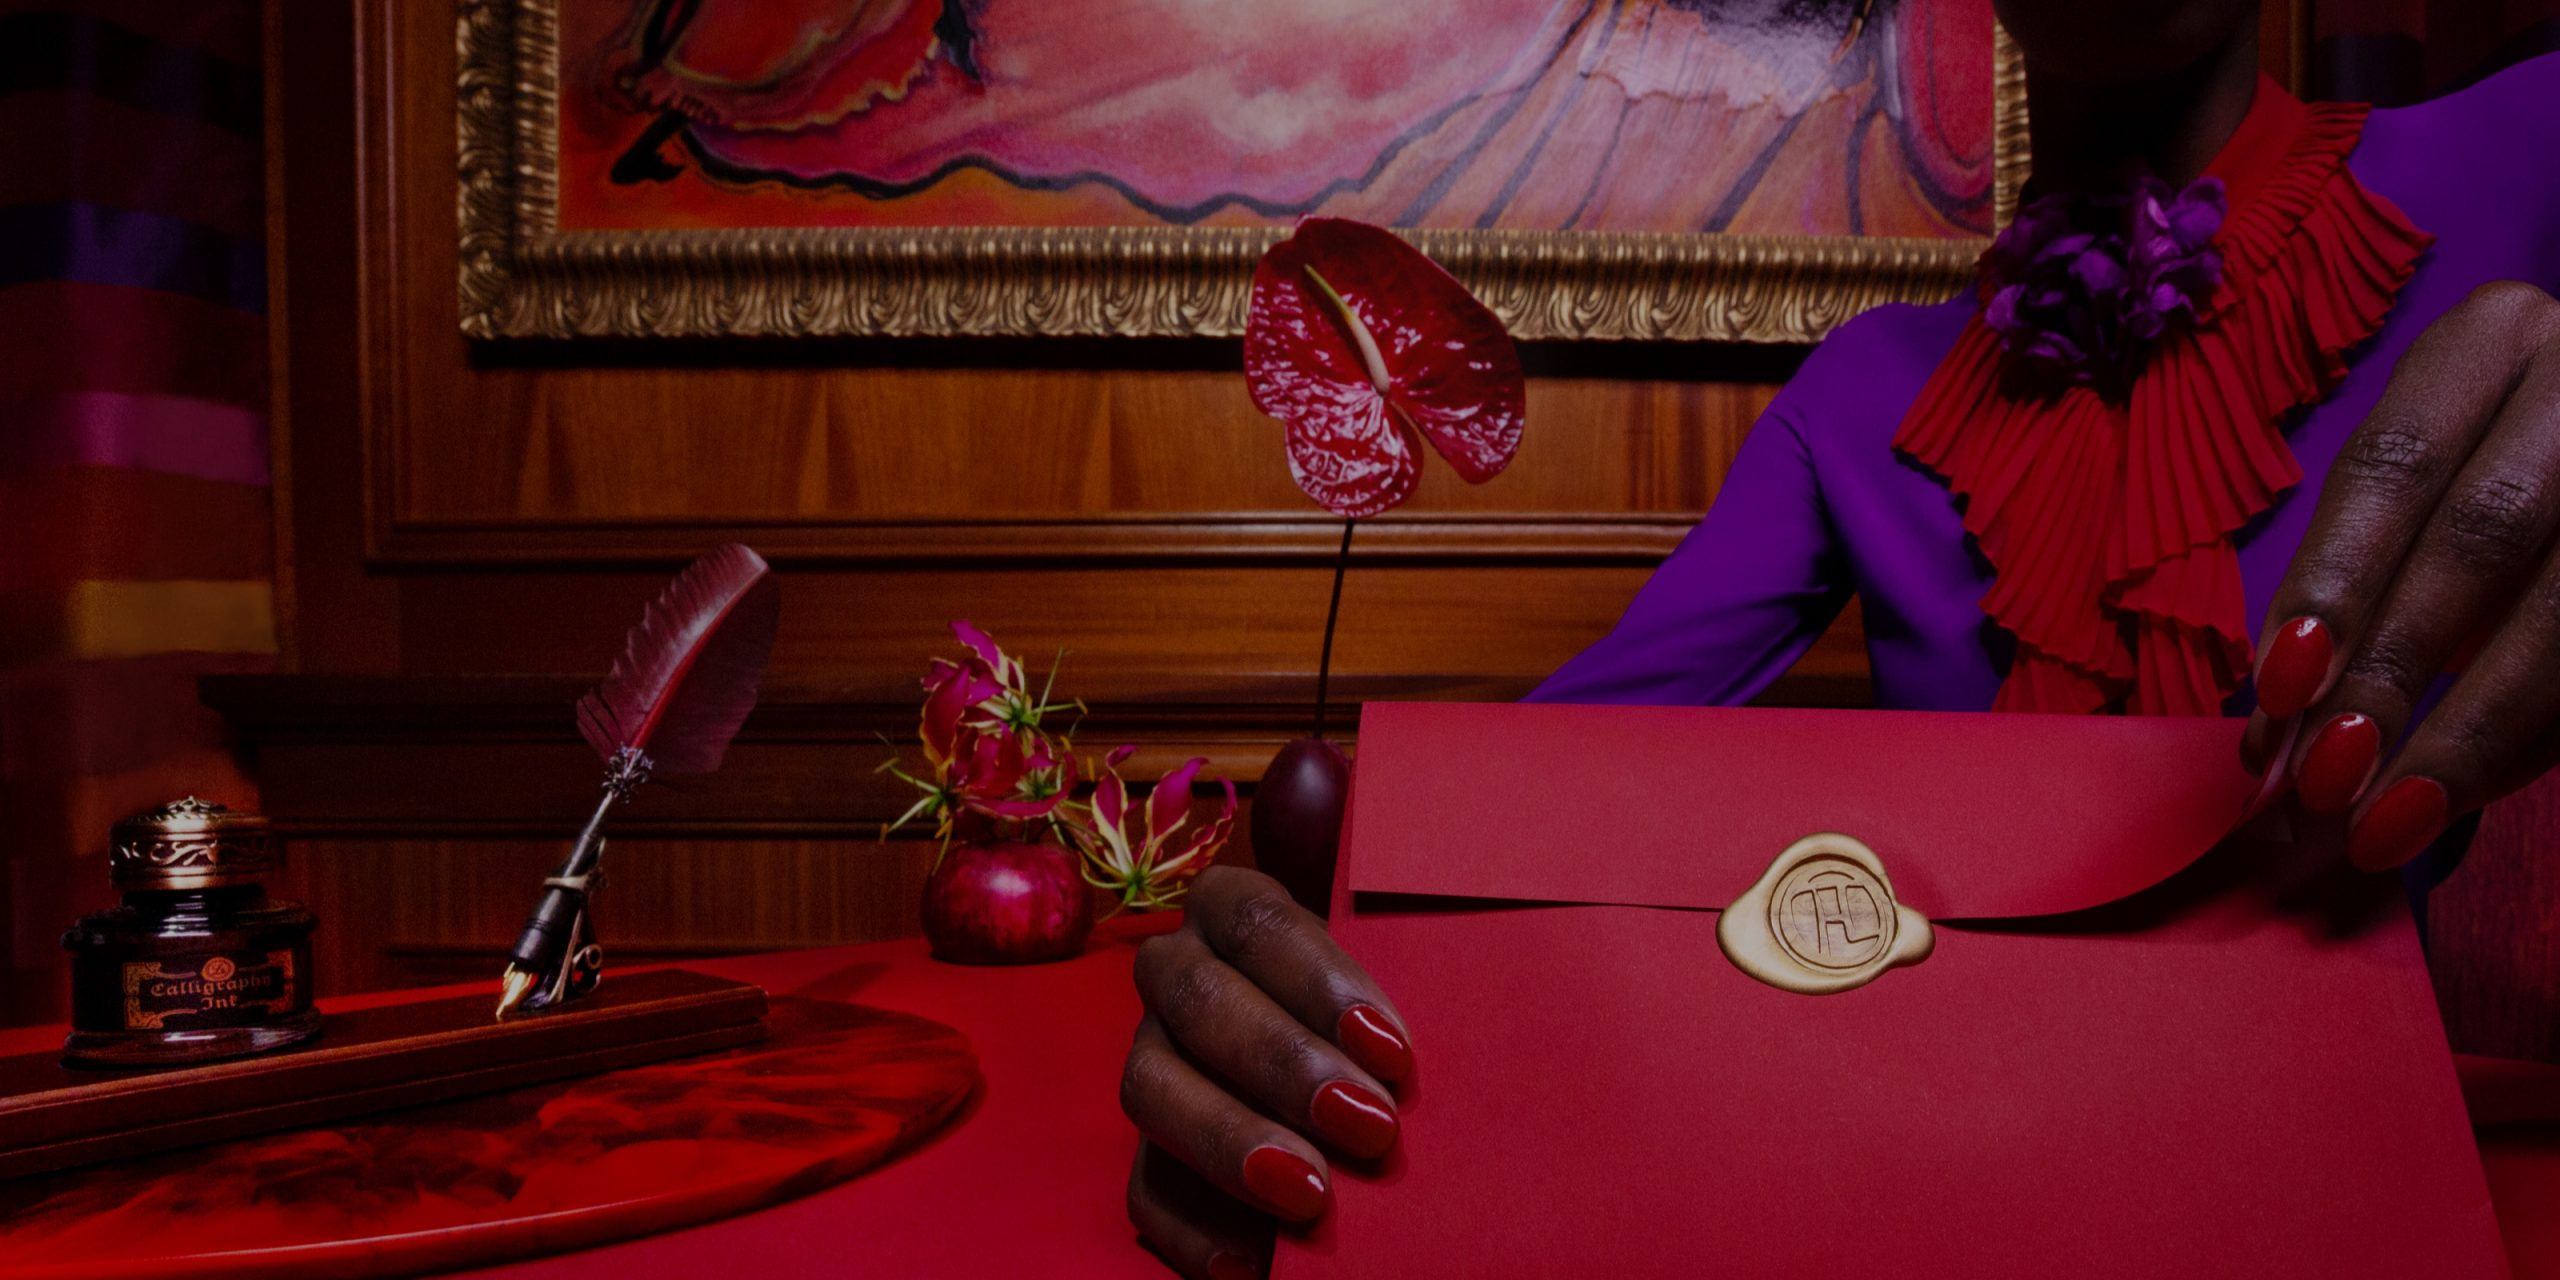 a close up shot of a woman in a purple blouse and bright red nails opening a red envelope.